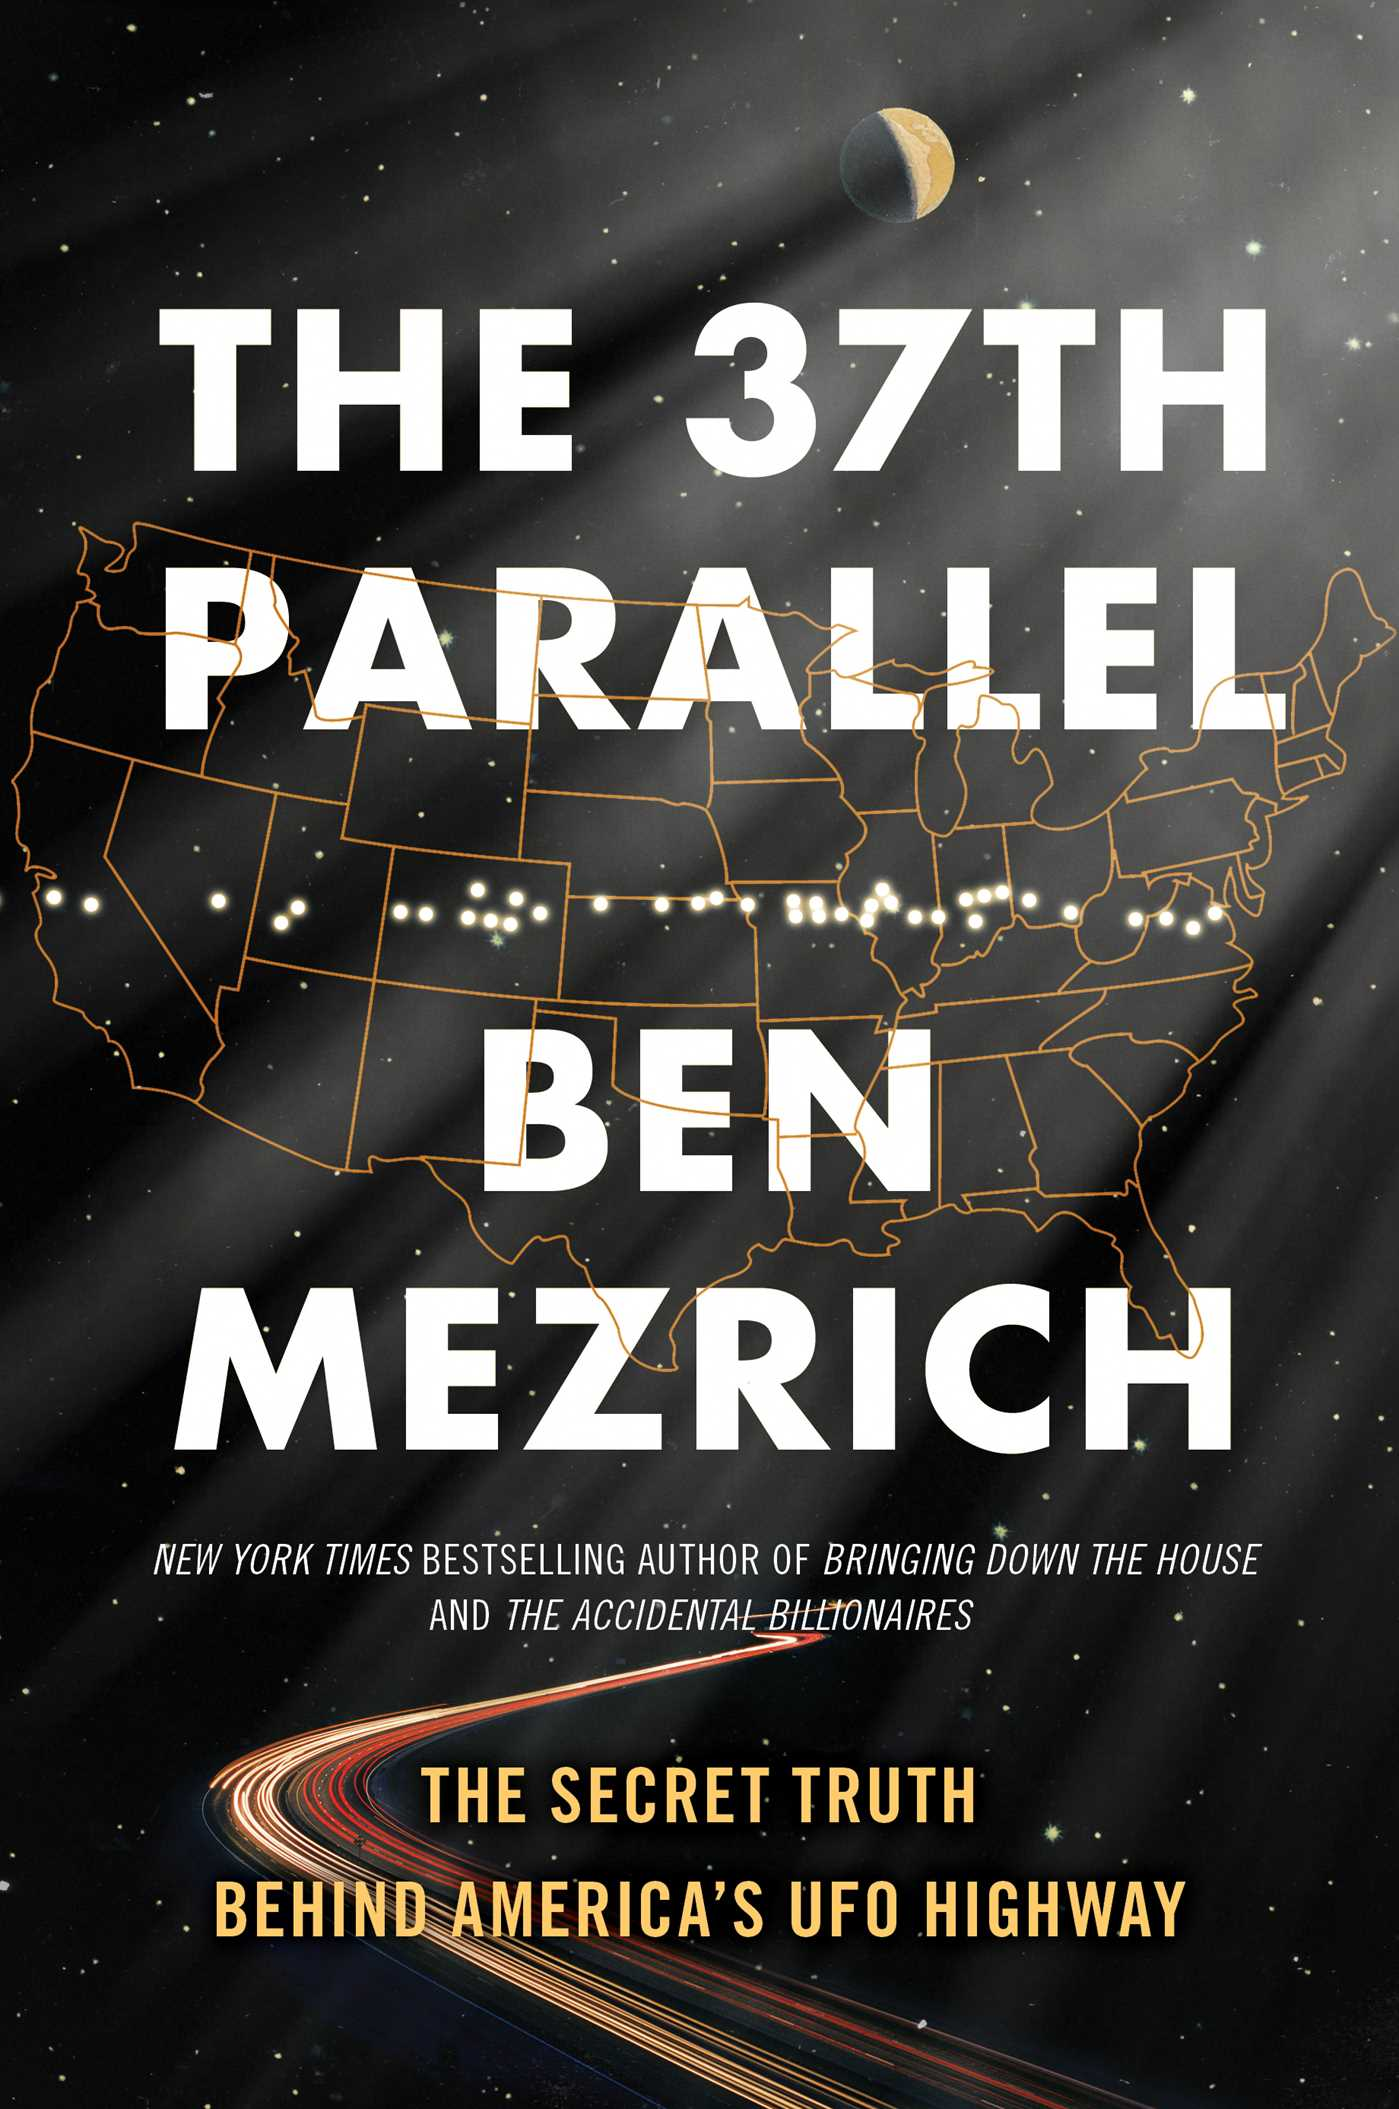 The 37th parallel 9781501135521 hr